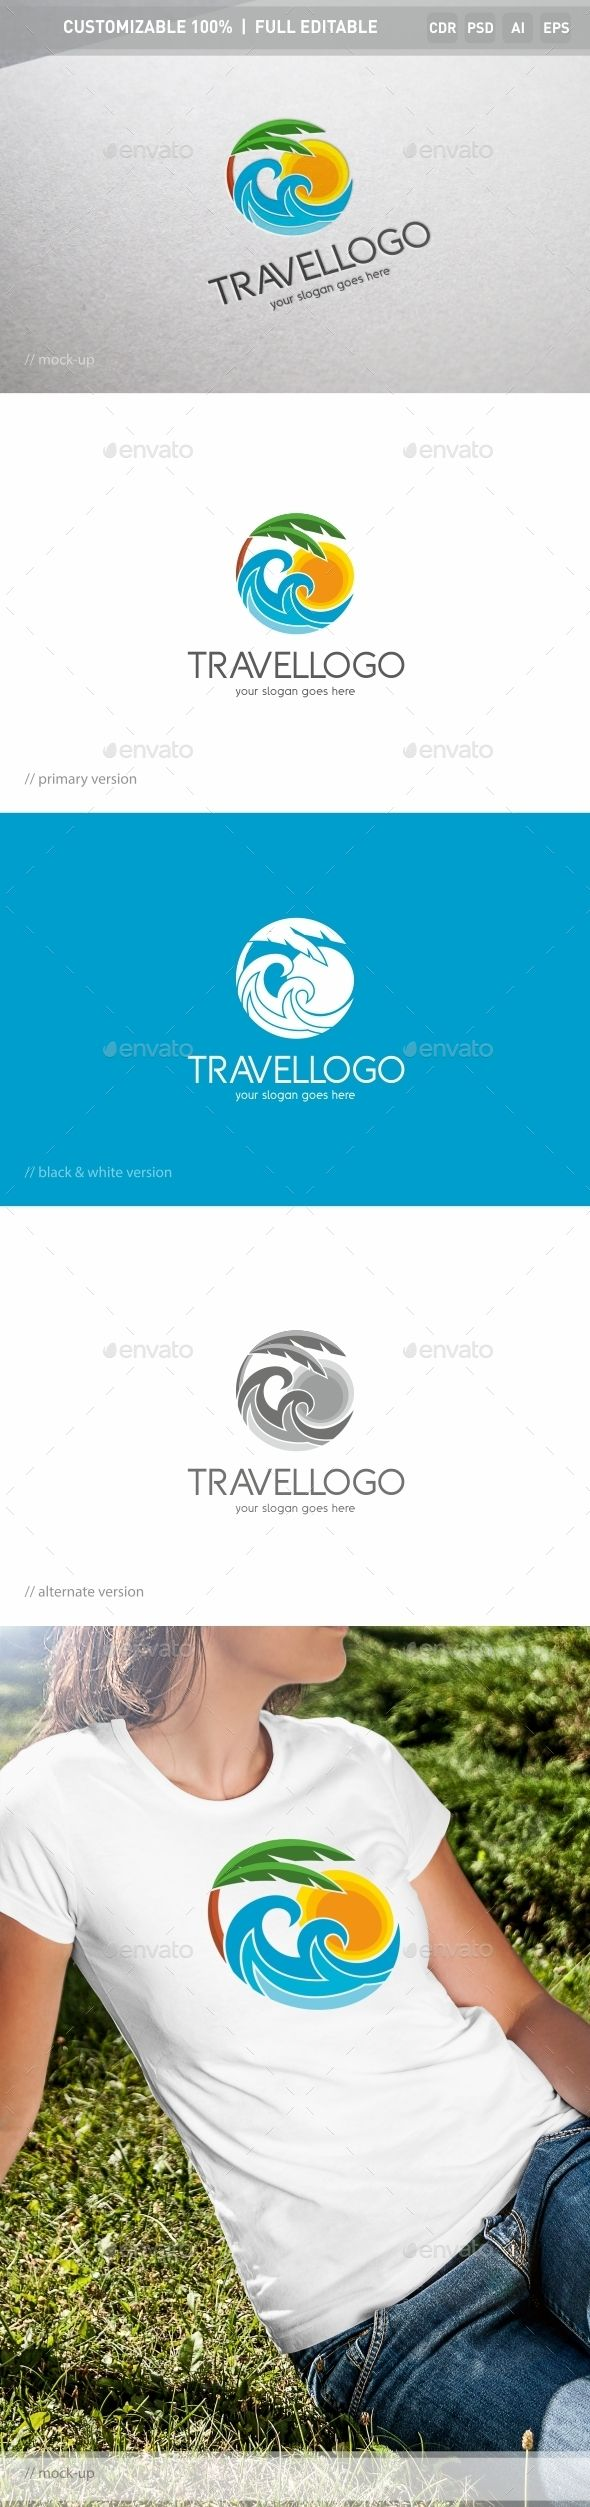 Travel - Logo Design Template Vector #logotype Download it here: http://graphicriver.net/item/travel-logo-template/13063466?s_rank=1255?ref=nexion